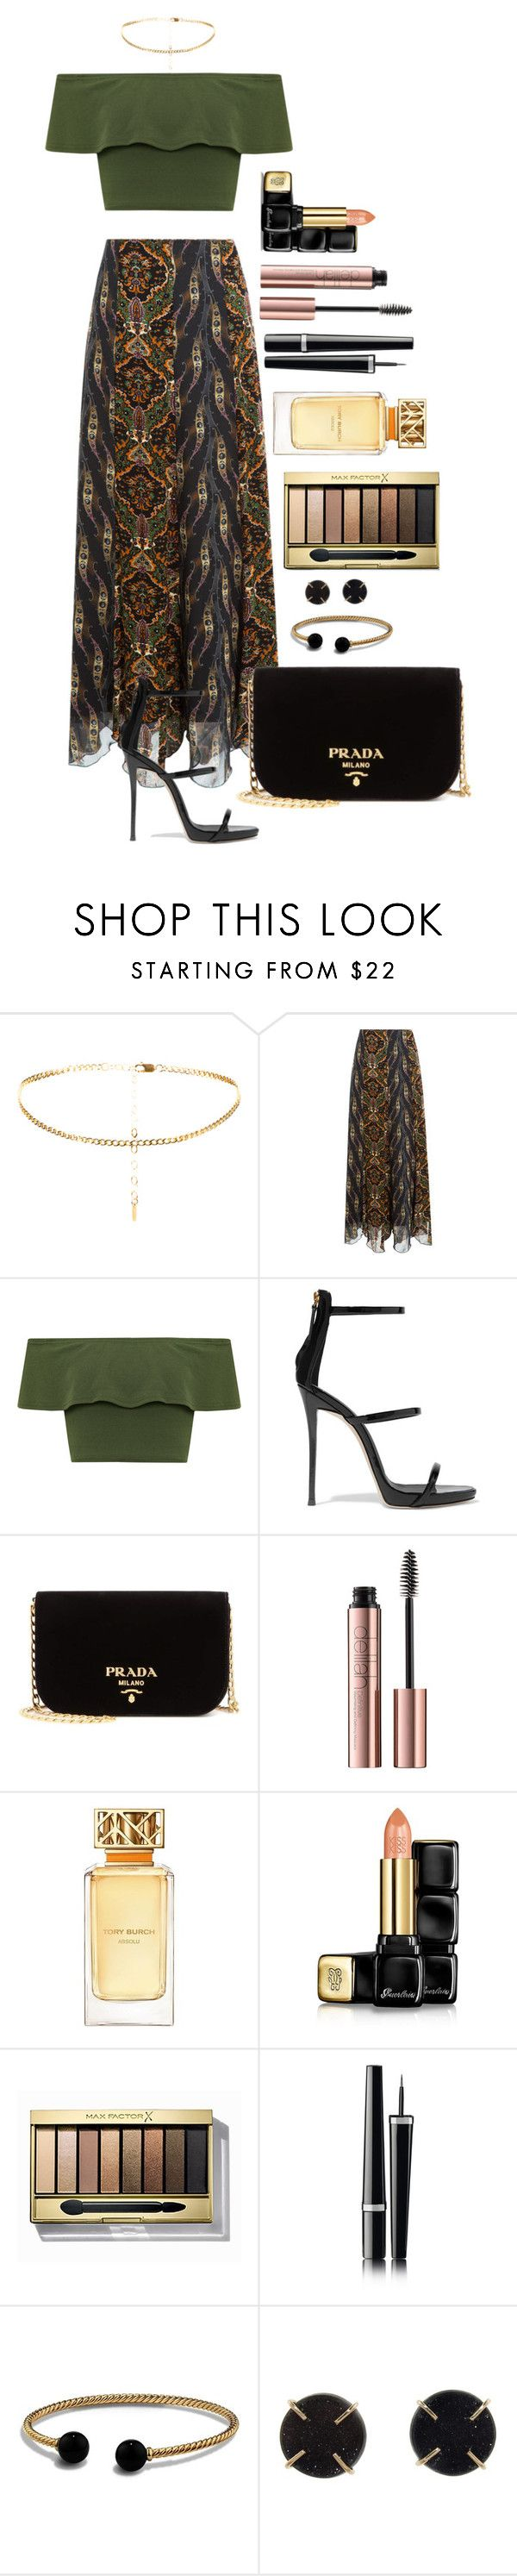 """Untitled #1588"" by fabianarveloc on Polyvore featuring Anna Sui, WearAll, Giuseppe Zanotti, Prada, Tory Burch, Guerlain, Max Factor, Chanel, David Yurman and Melissa Joy Manning"